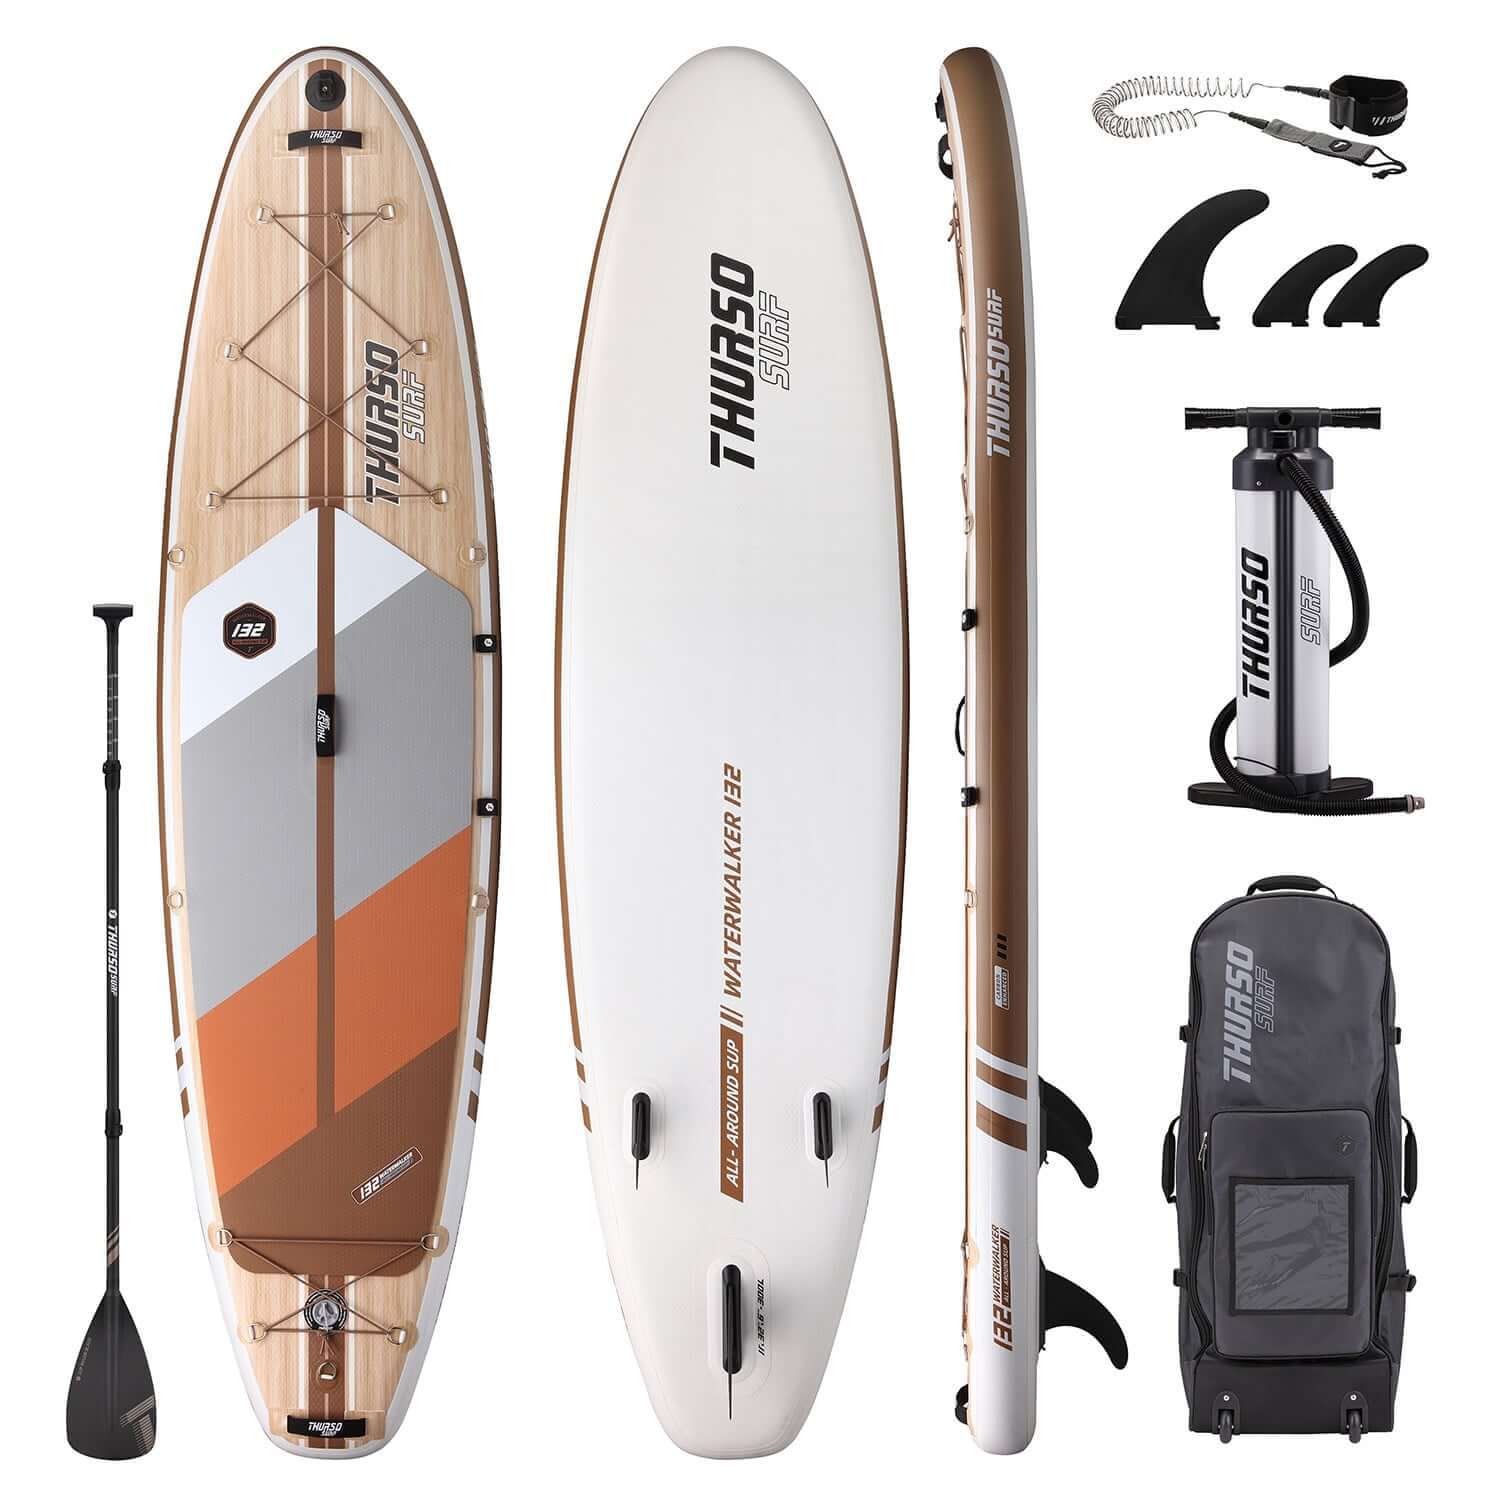 Thurso Surf Waterwalker with leash, fins, pump, backpack, and paddle